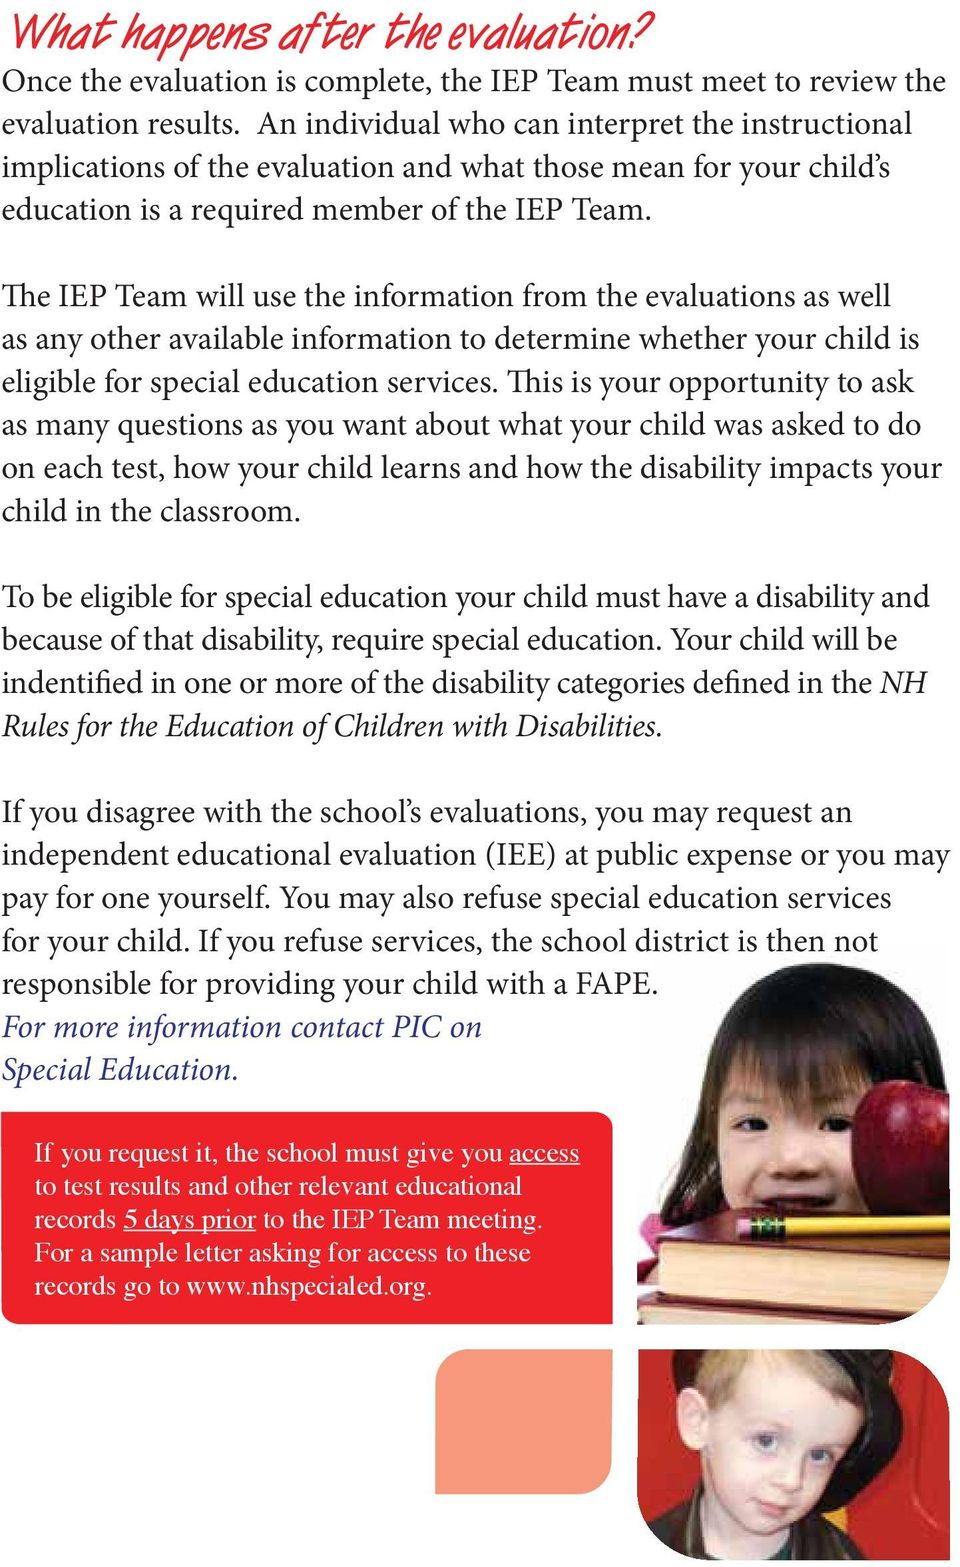 The IEP Team will use the information from the evaluations as well as any other available information to determine whether your child is eligible for special education services.